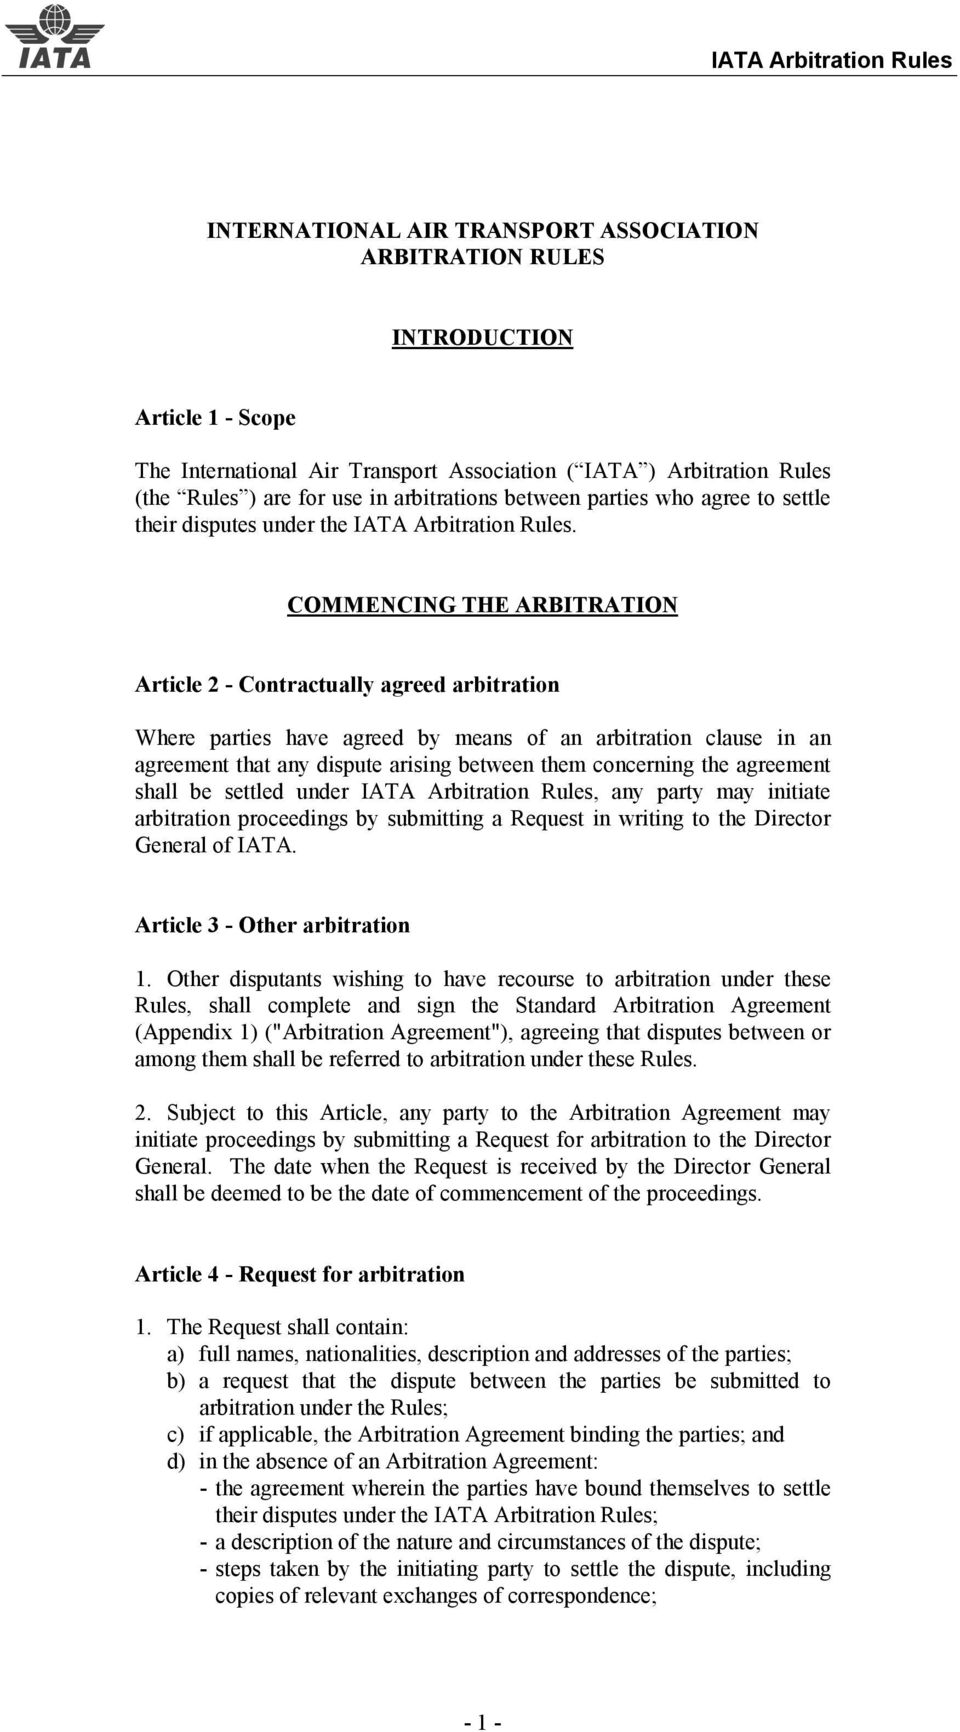 COMMENCING THE ARBITRATION Article 2 - Contractually agreed arbitration Where parties have agreed by means of an arbitration clause in an agreement that any dispute arising between them concerning